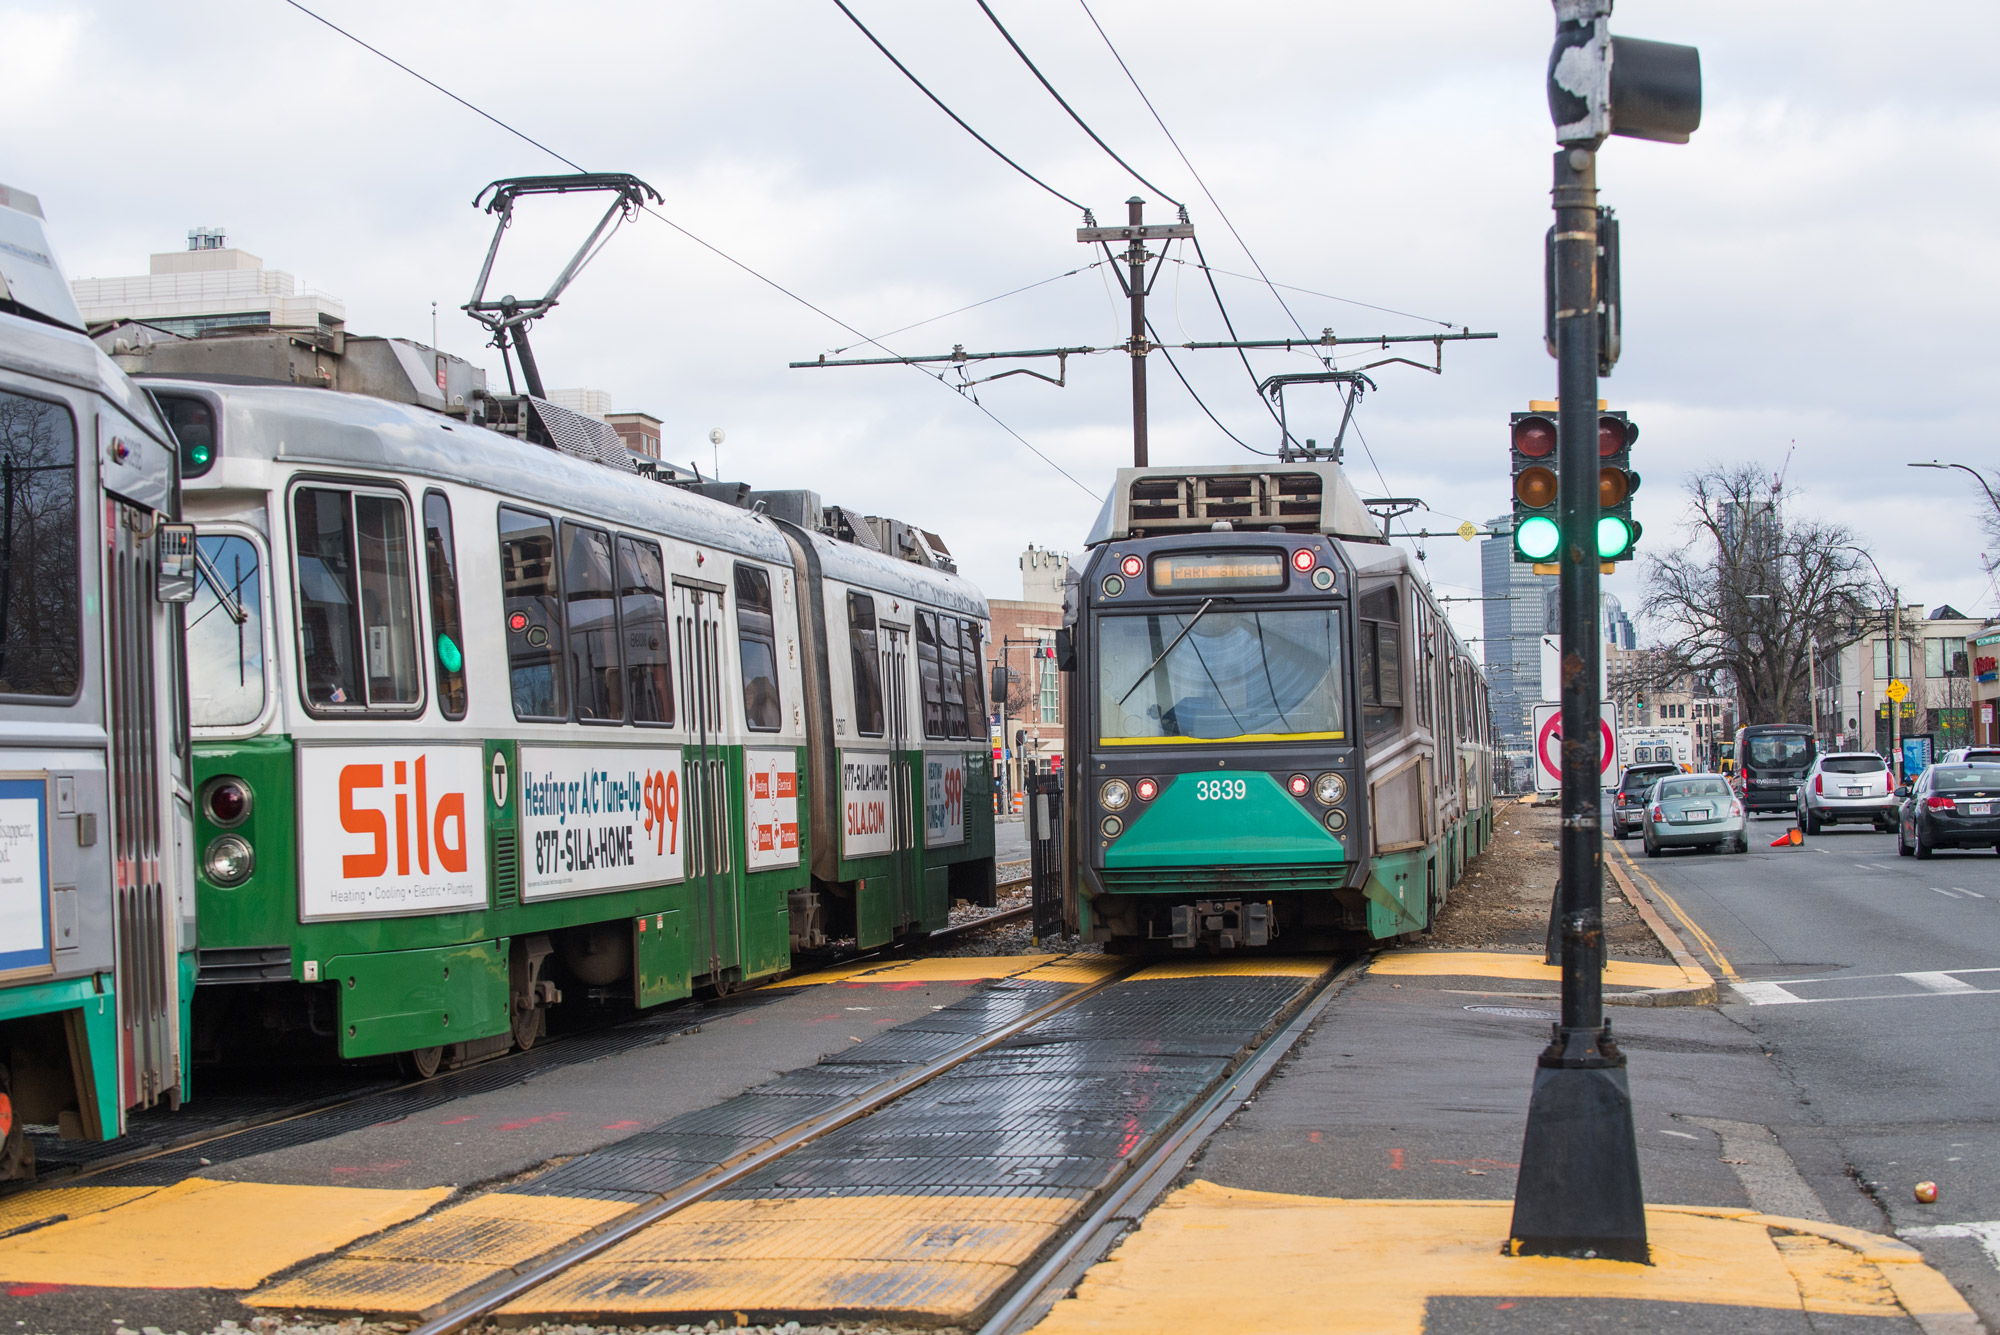 Two greenline MBTA trains pass along Commonwealth Avenue.